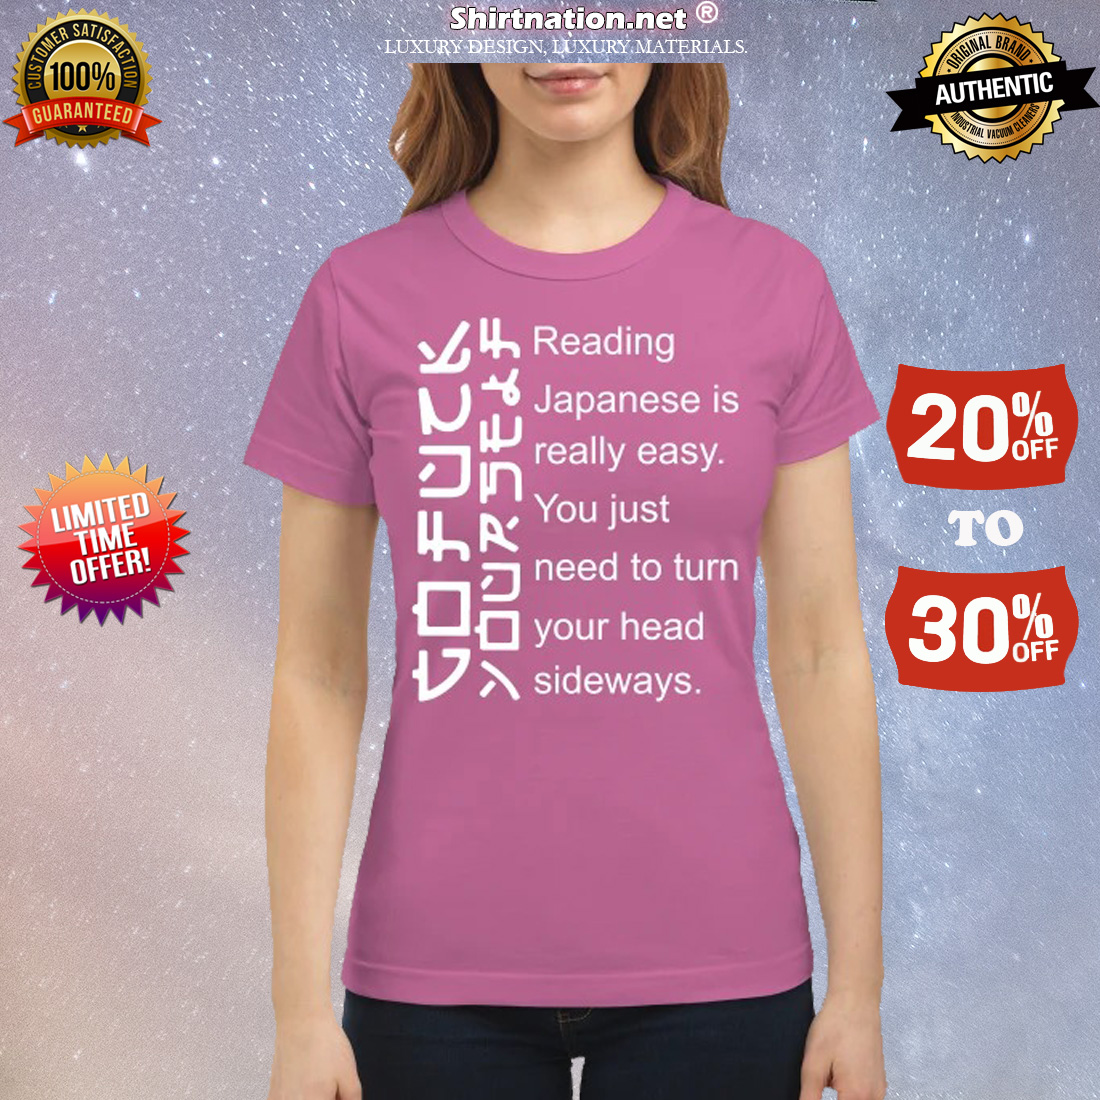 Reading Japanese is really easy you just need to turn your head sideways classic shirt